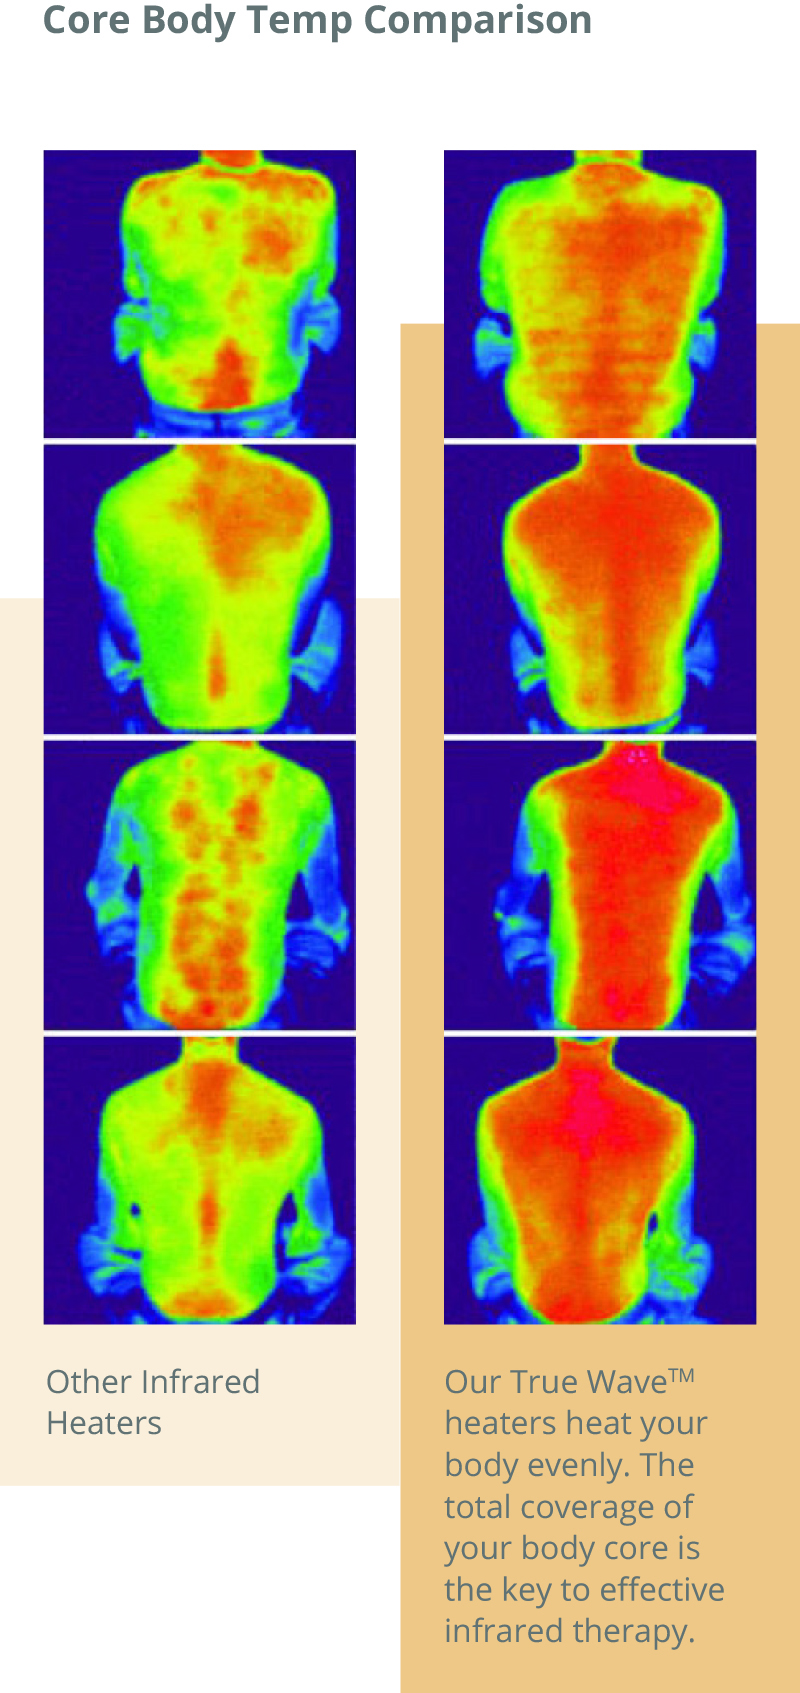 core body temp comparison with True Wave heaters in infrared therapy